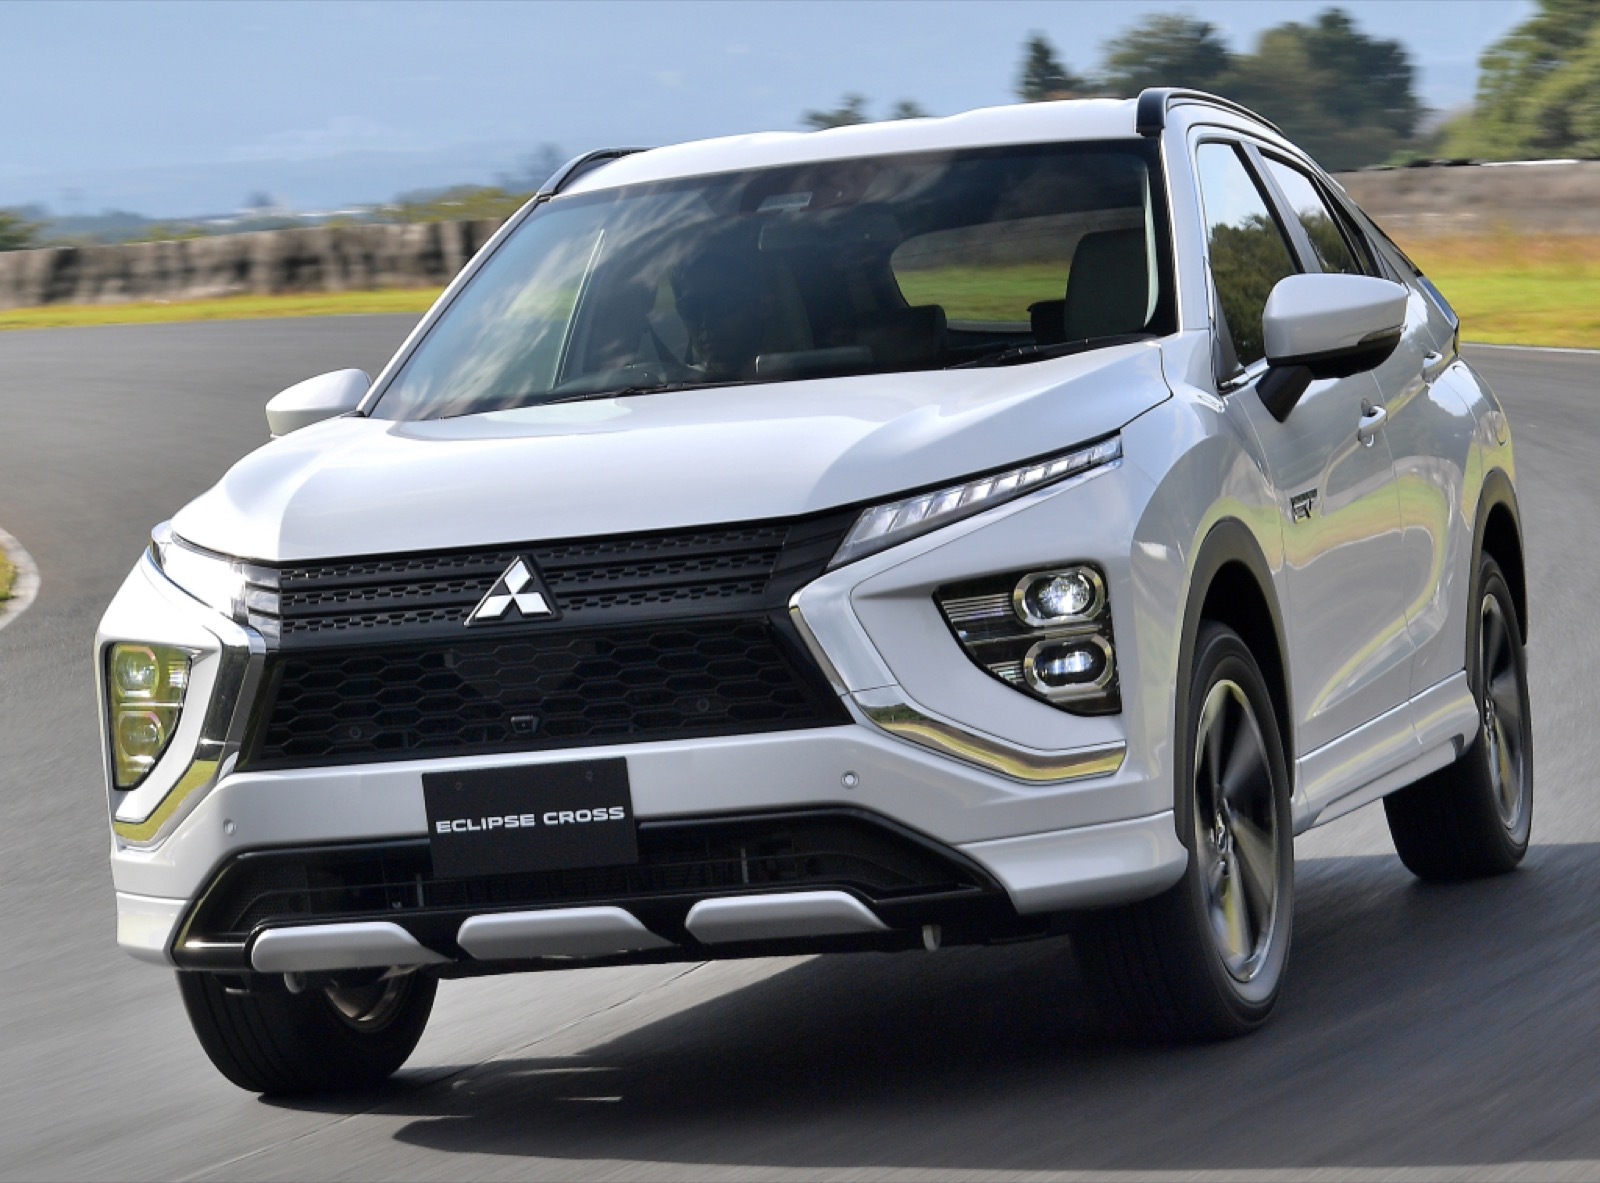 msubishi-eclipse-cross-phev-2020-14